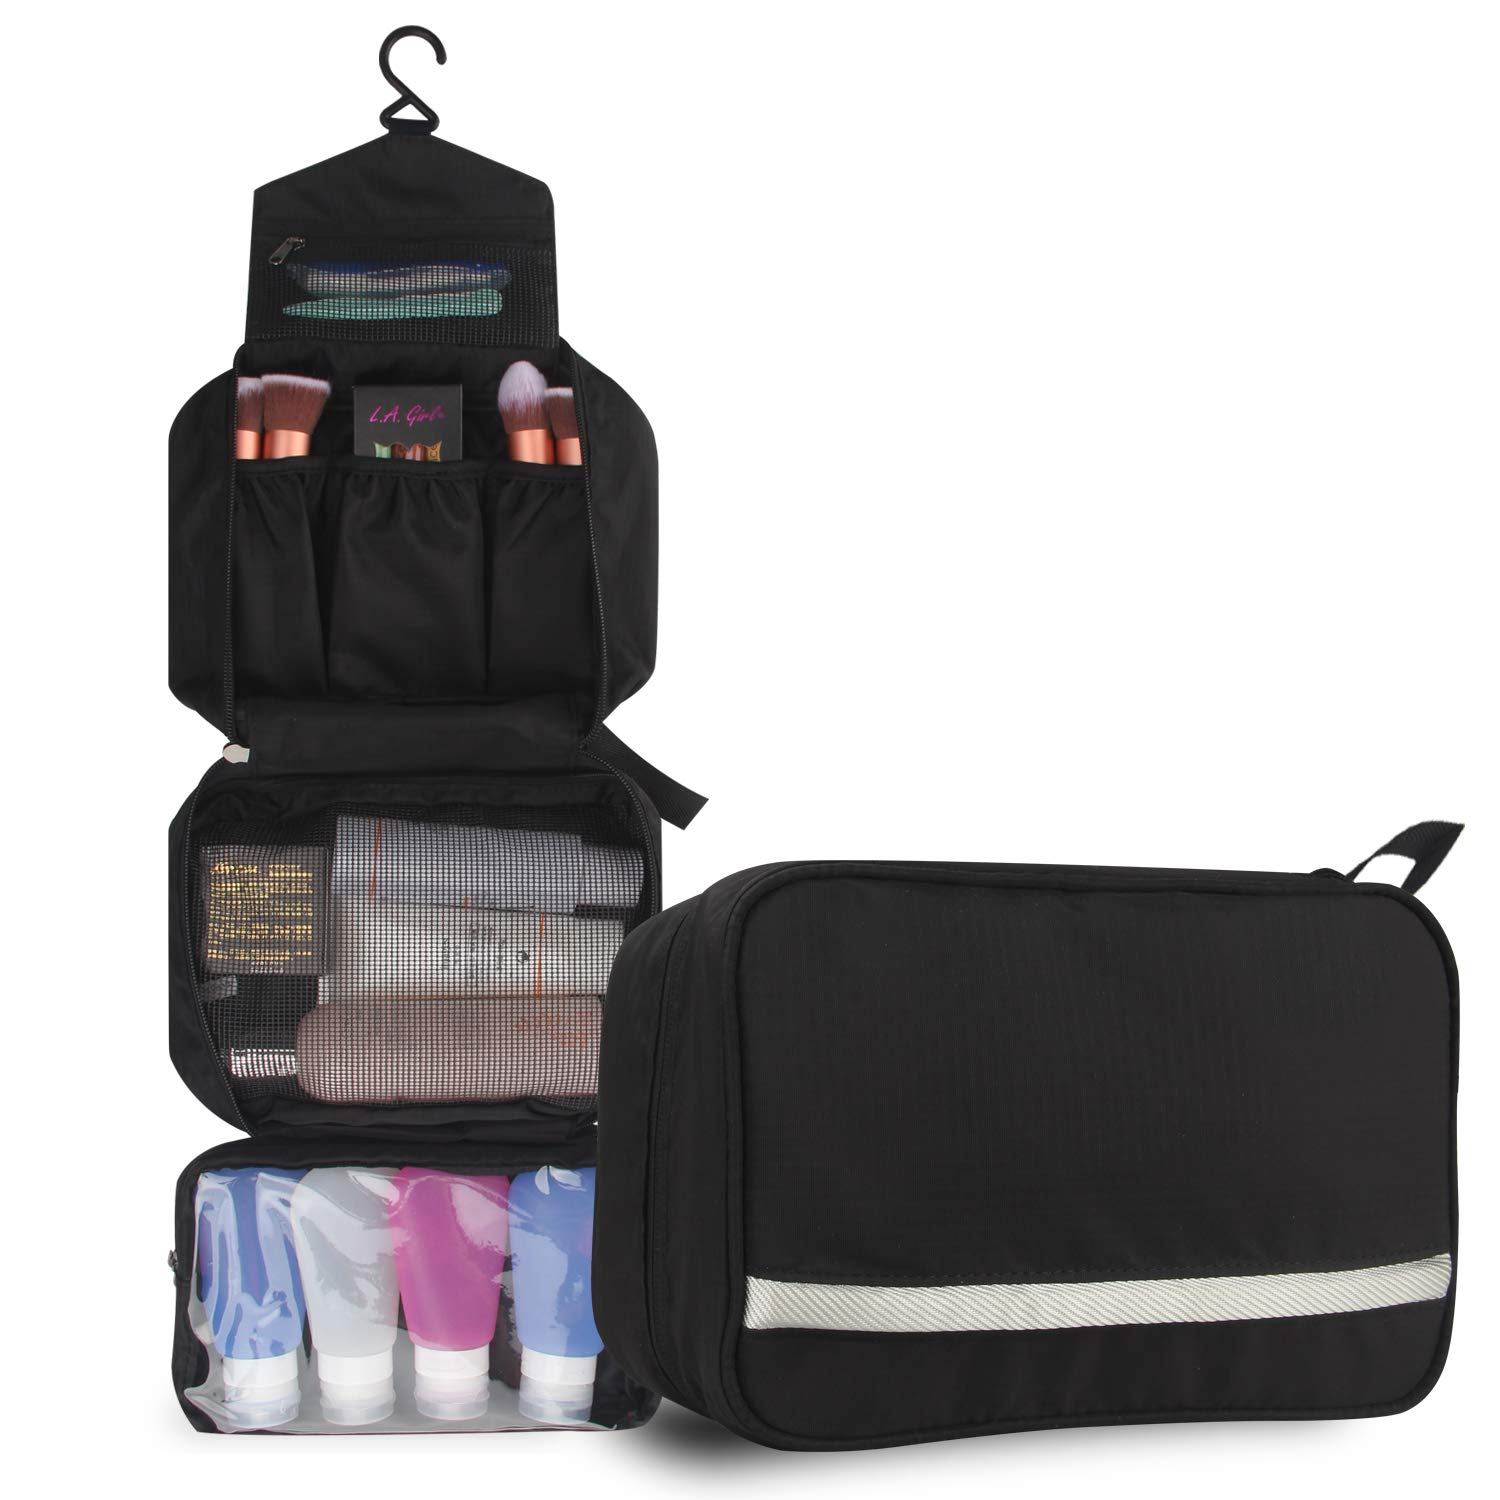 Relavel Cosmetic Pouch Toiletry Bags Travel Business Handbag Waterproof Compact Hanging Personal Care Hygiene Purse (Black)